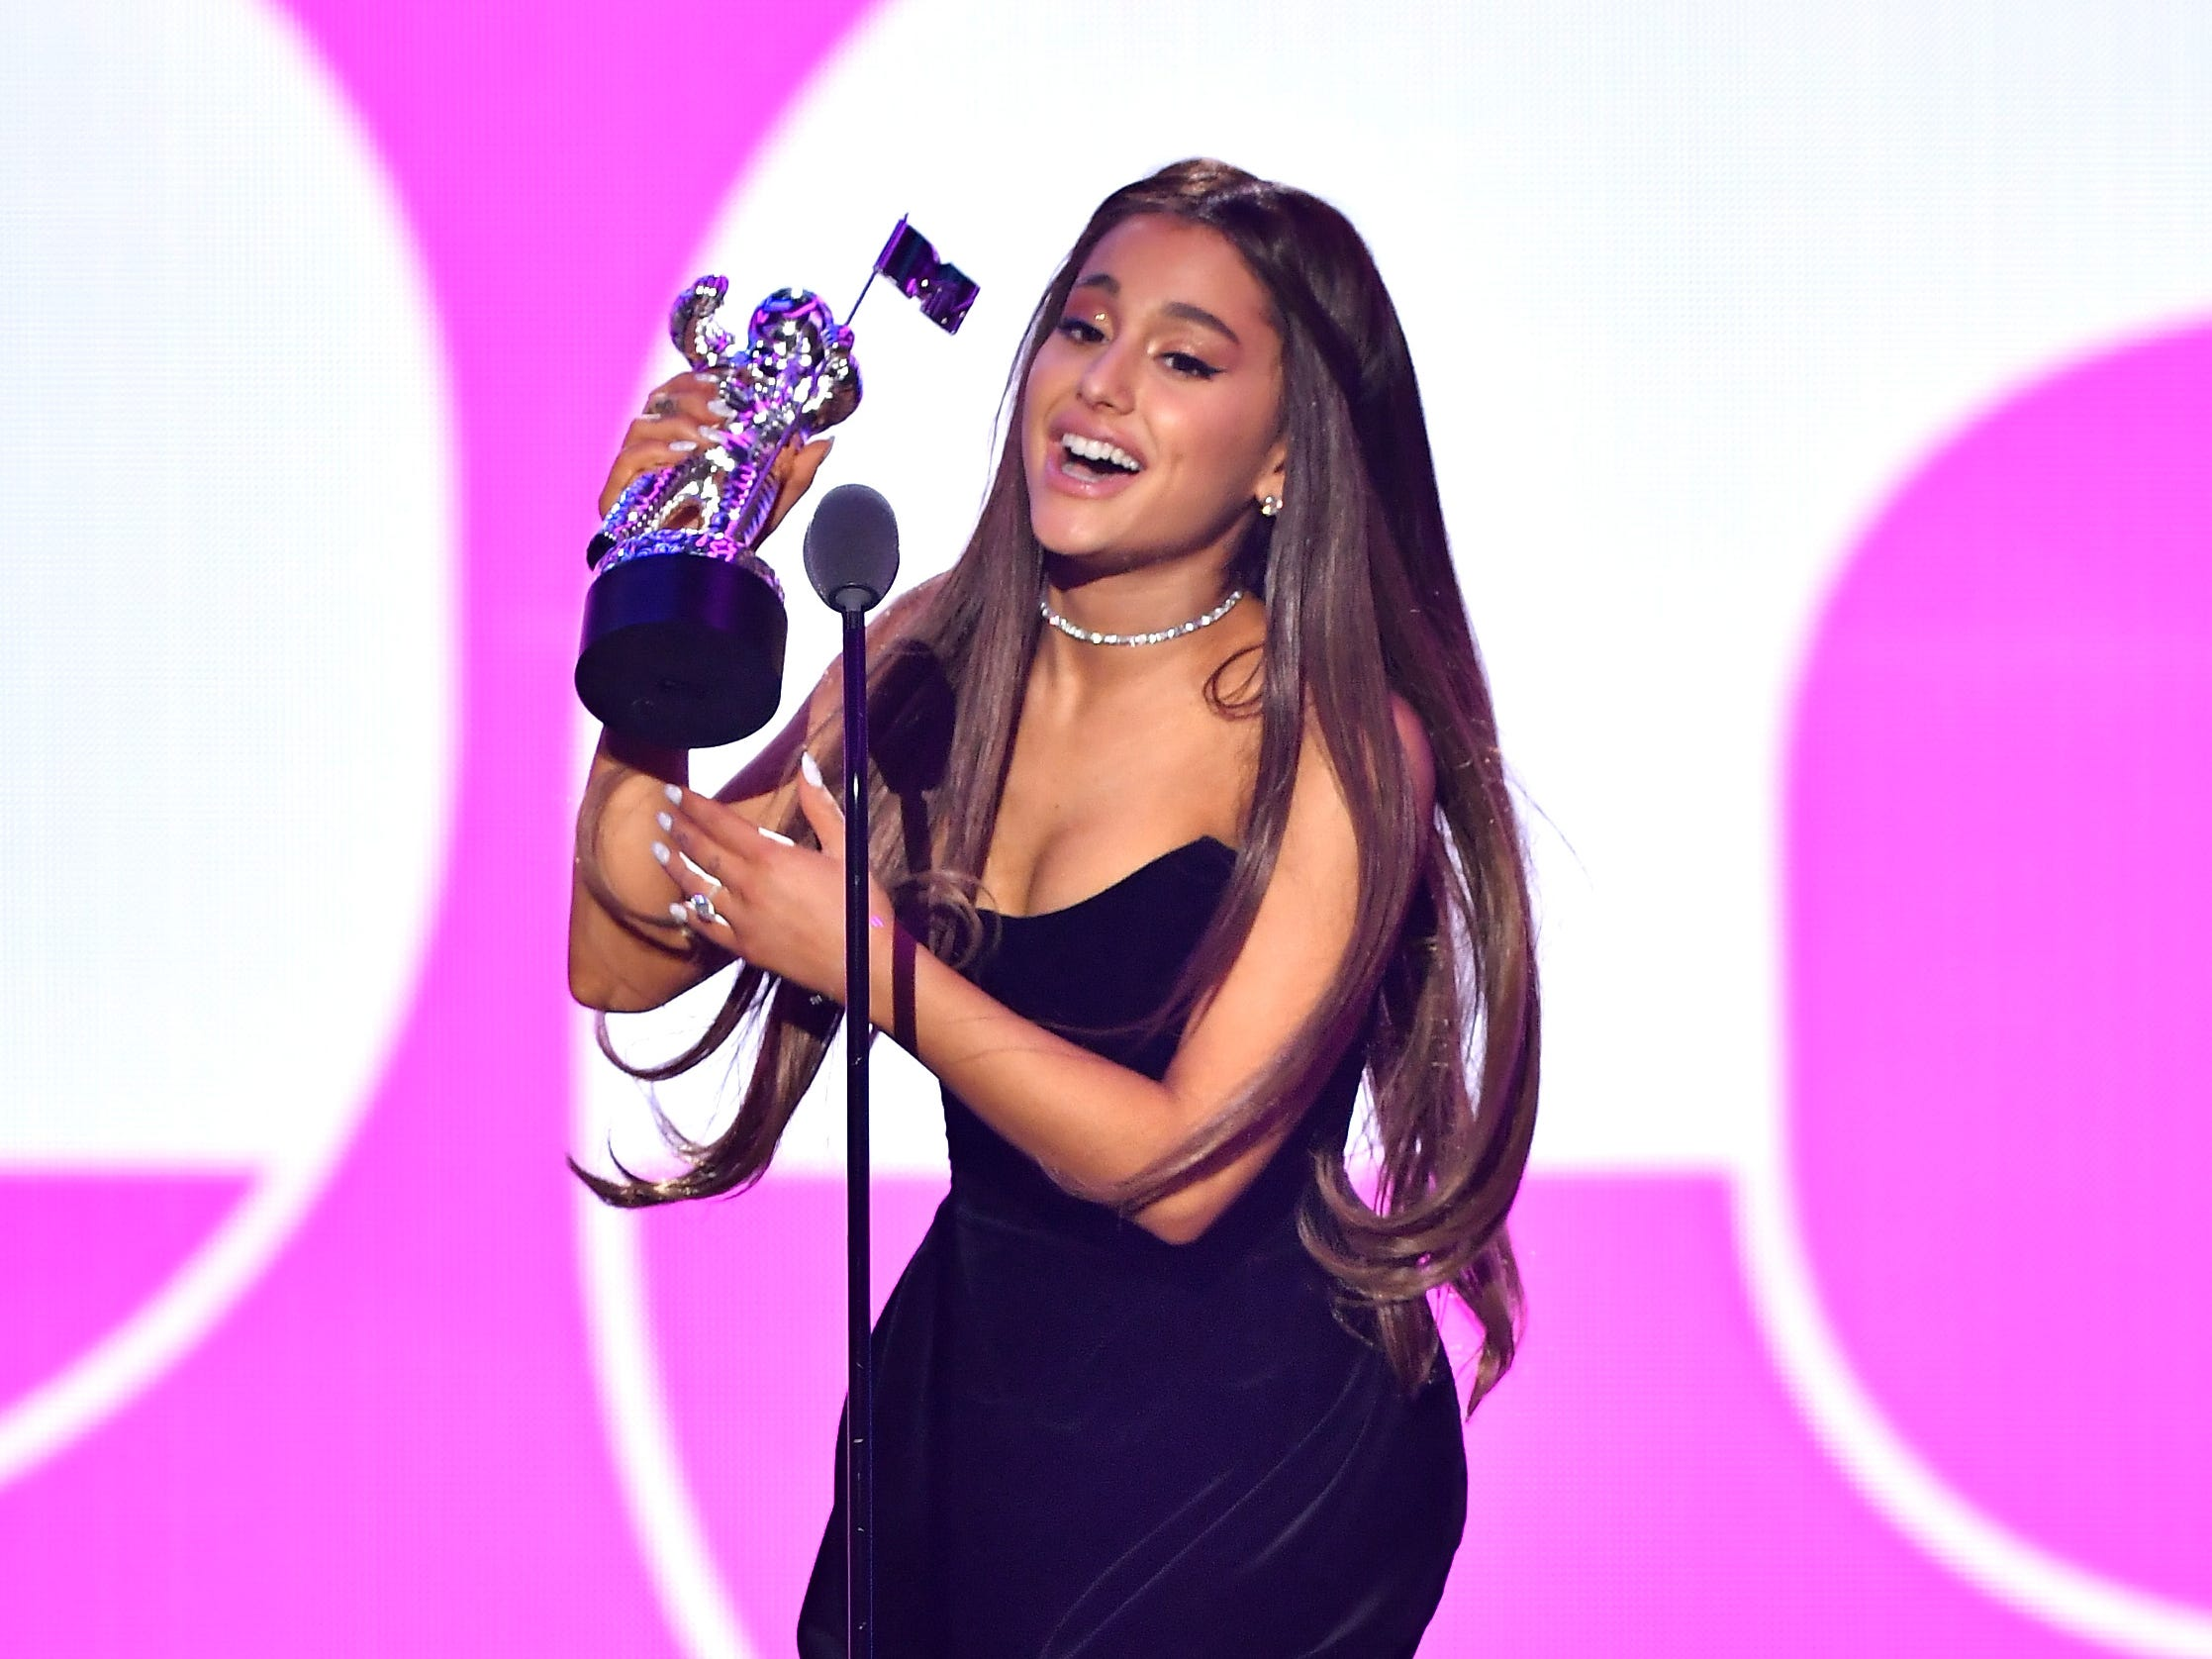 NEW YORK, NY - AUGUST 20: Ariana Grande accepts the award for Best Pop Video onstage during the 2018 MTV Video Music Awards at Radio City Music Hall on August 20, 2018 in New York City.  (Photo by Michael Loccisano/Getty Images for MTV) ORG XMIT: 775210297 ORIG FILE ID: 1020326134